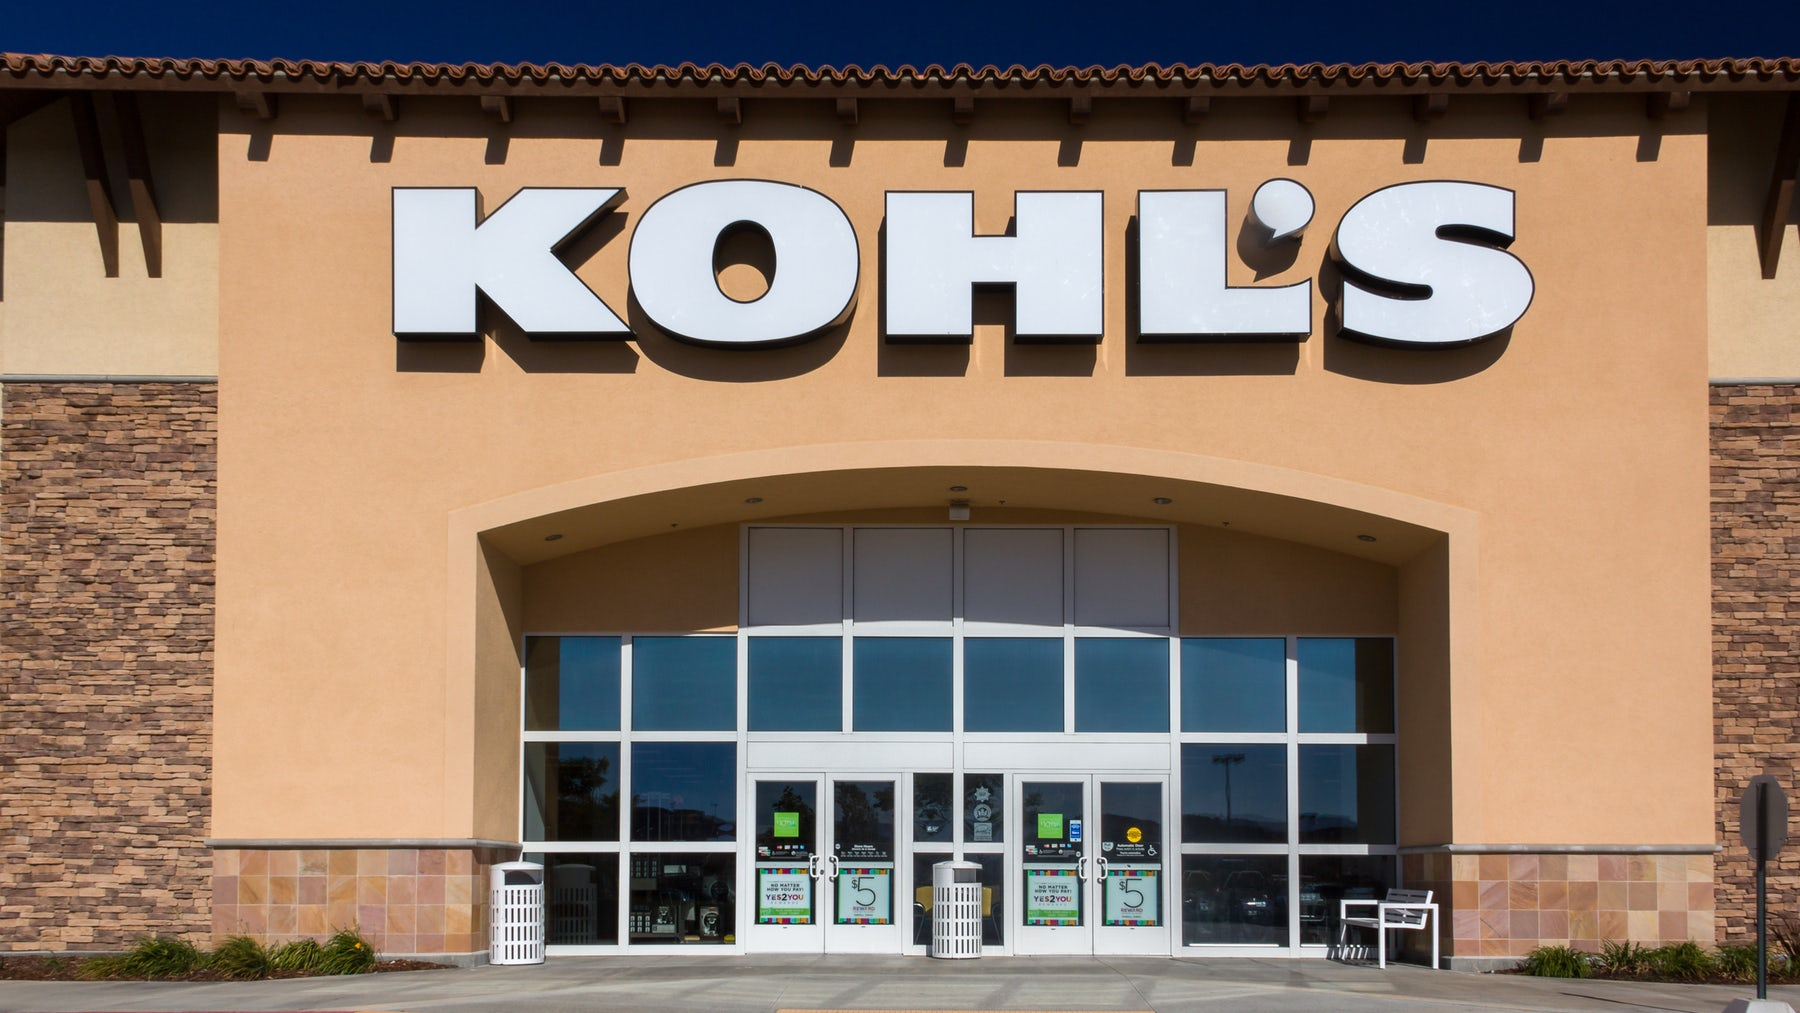 Kohl's retail storefront | Source: Shutterstock